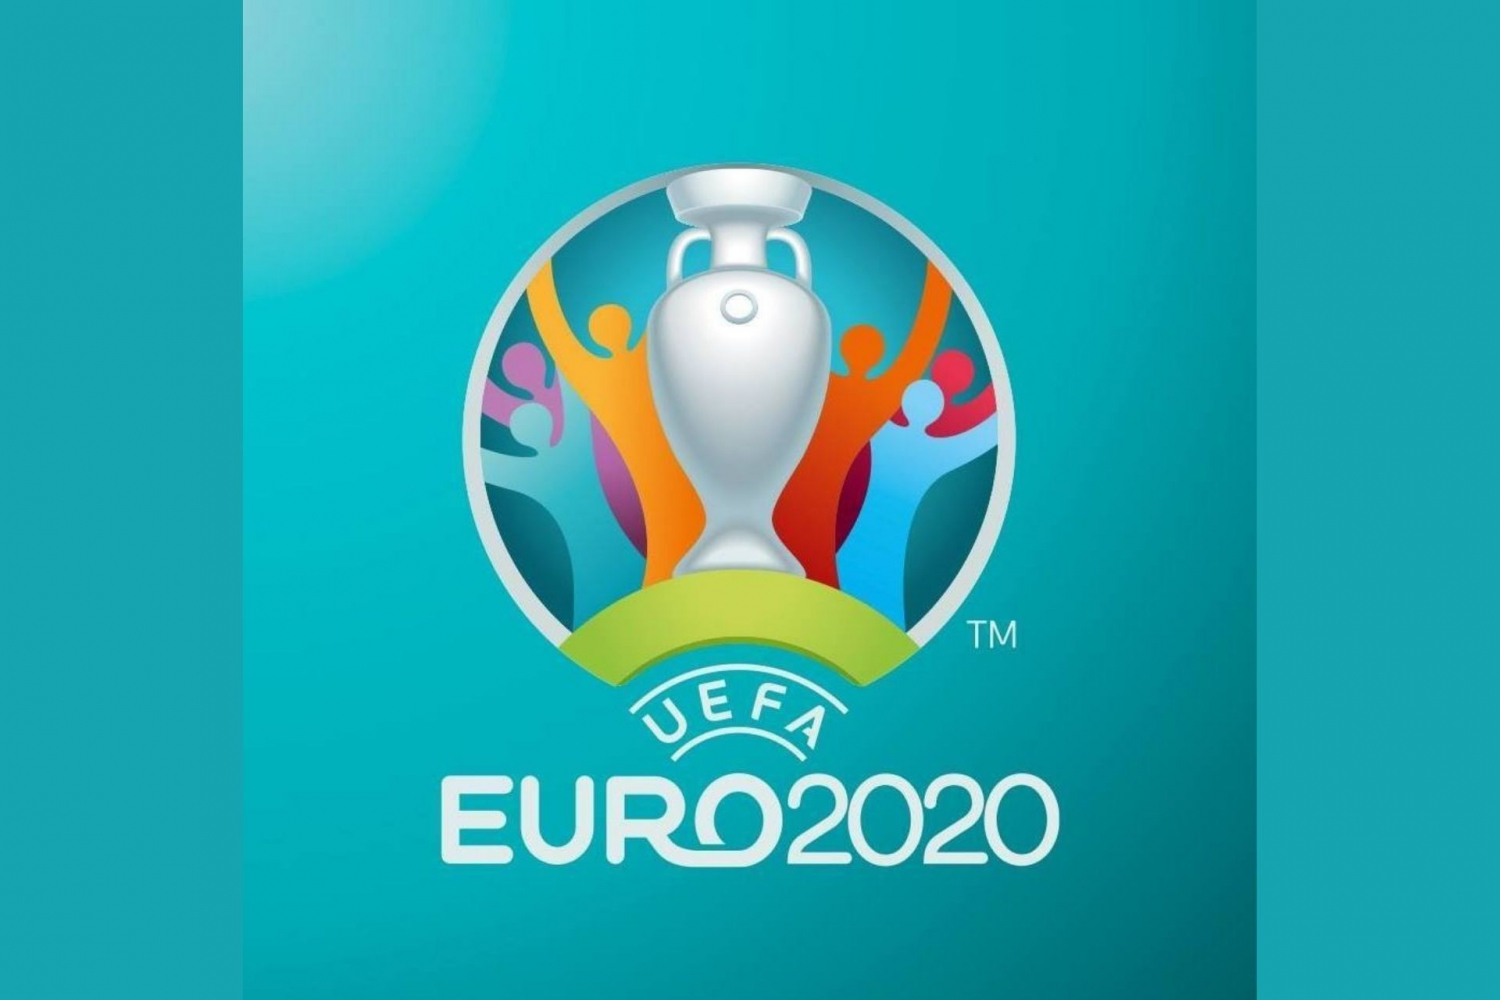 Where to watch Euro 2020 in Algarve